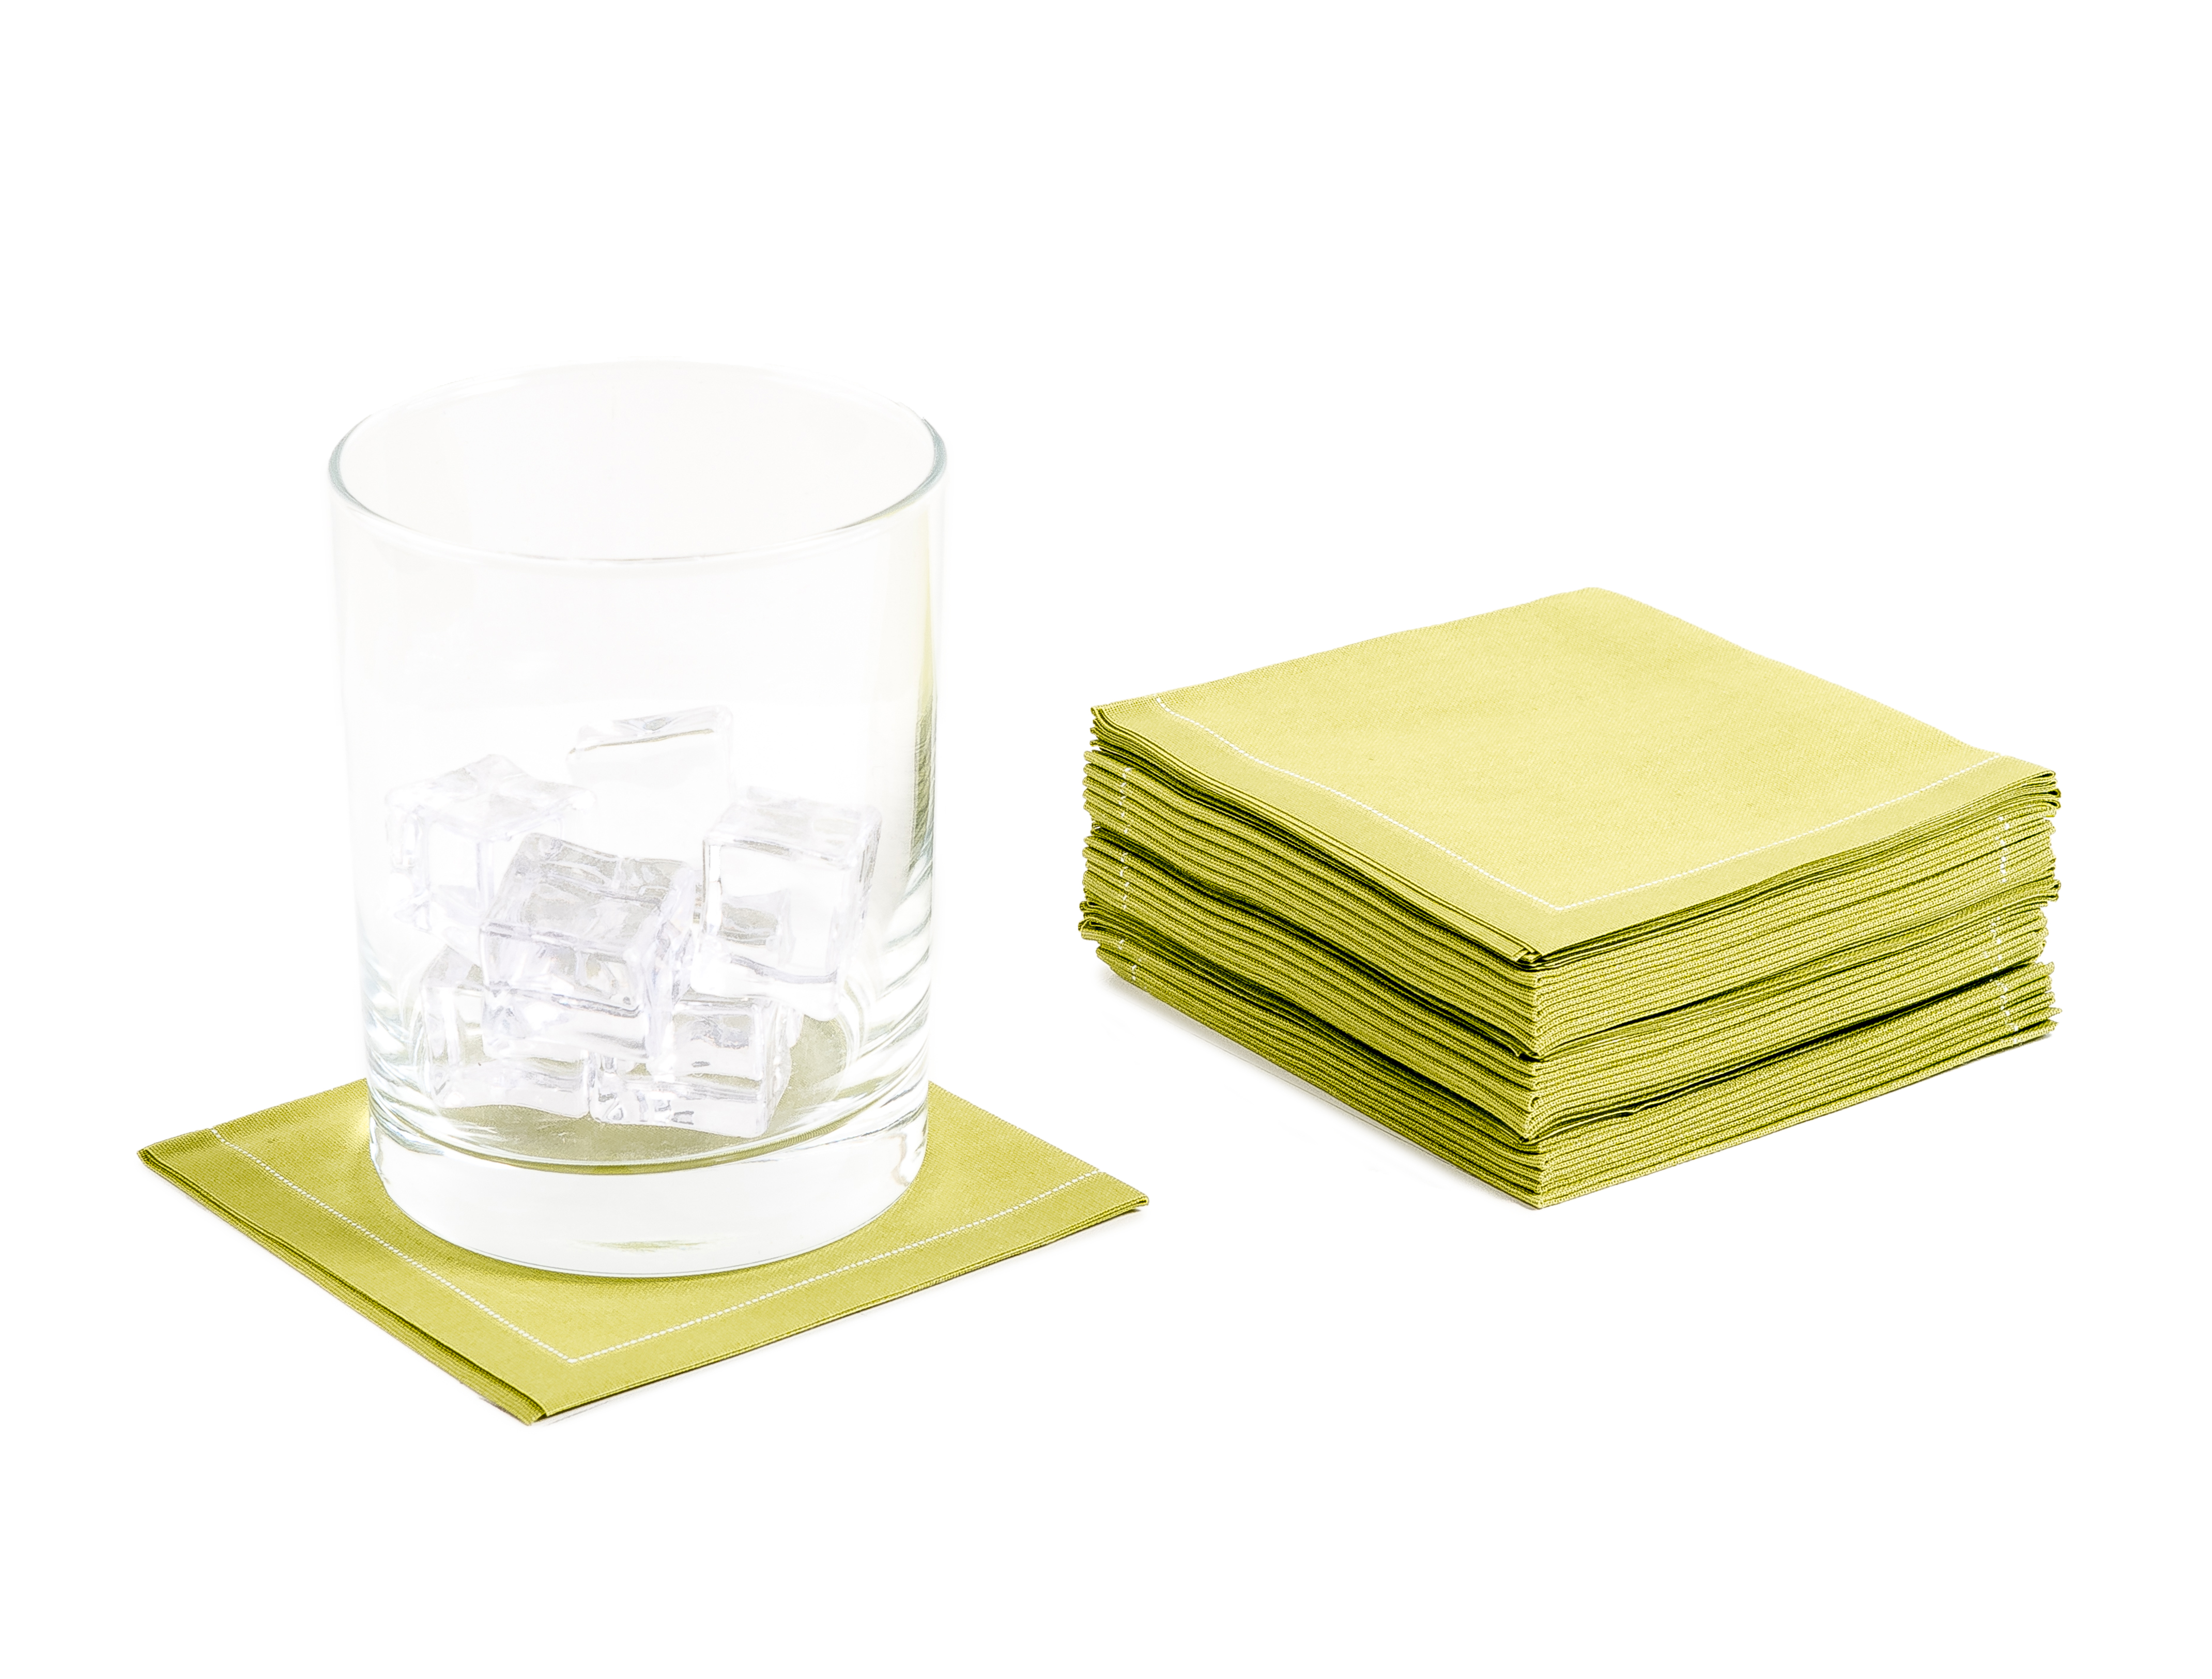 "Pear Cotton 1/4 Fold Cocktail (140 GSM) - 8"" x 8"" (folded 4"" x 4"") - 600 units"